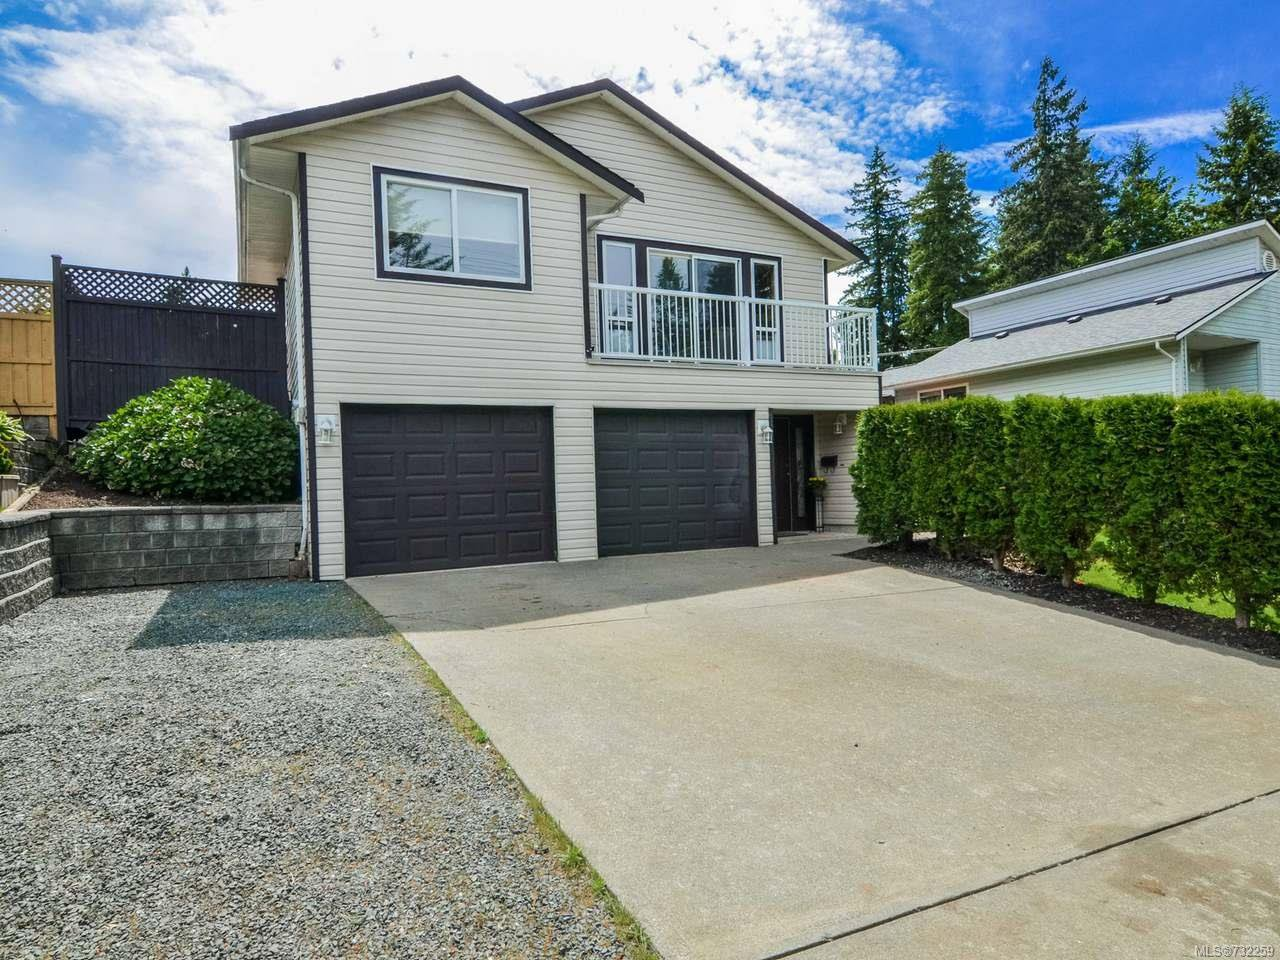 Main Photo: 845 PINECREST ROAD in CAMPBELL RIVER: Z1 Campbell River Central House for sale (Campbell River)  : MLS®# 732259